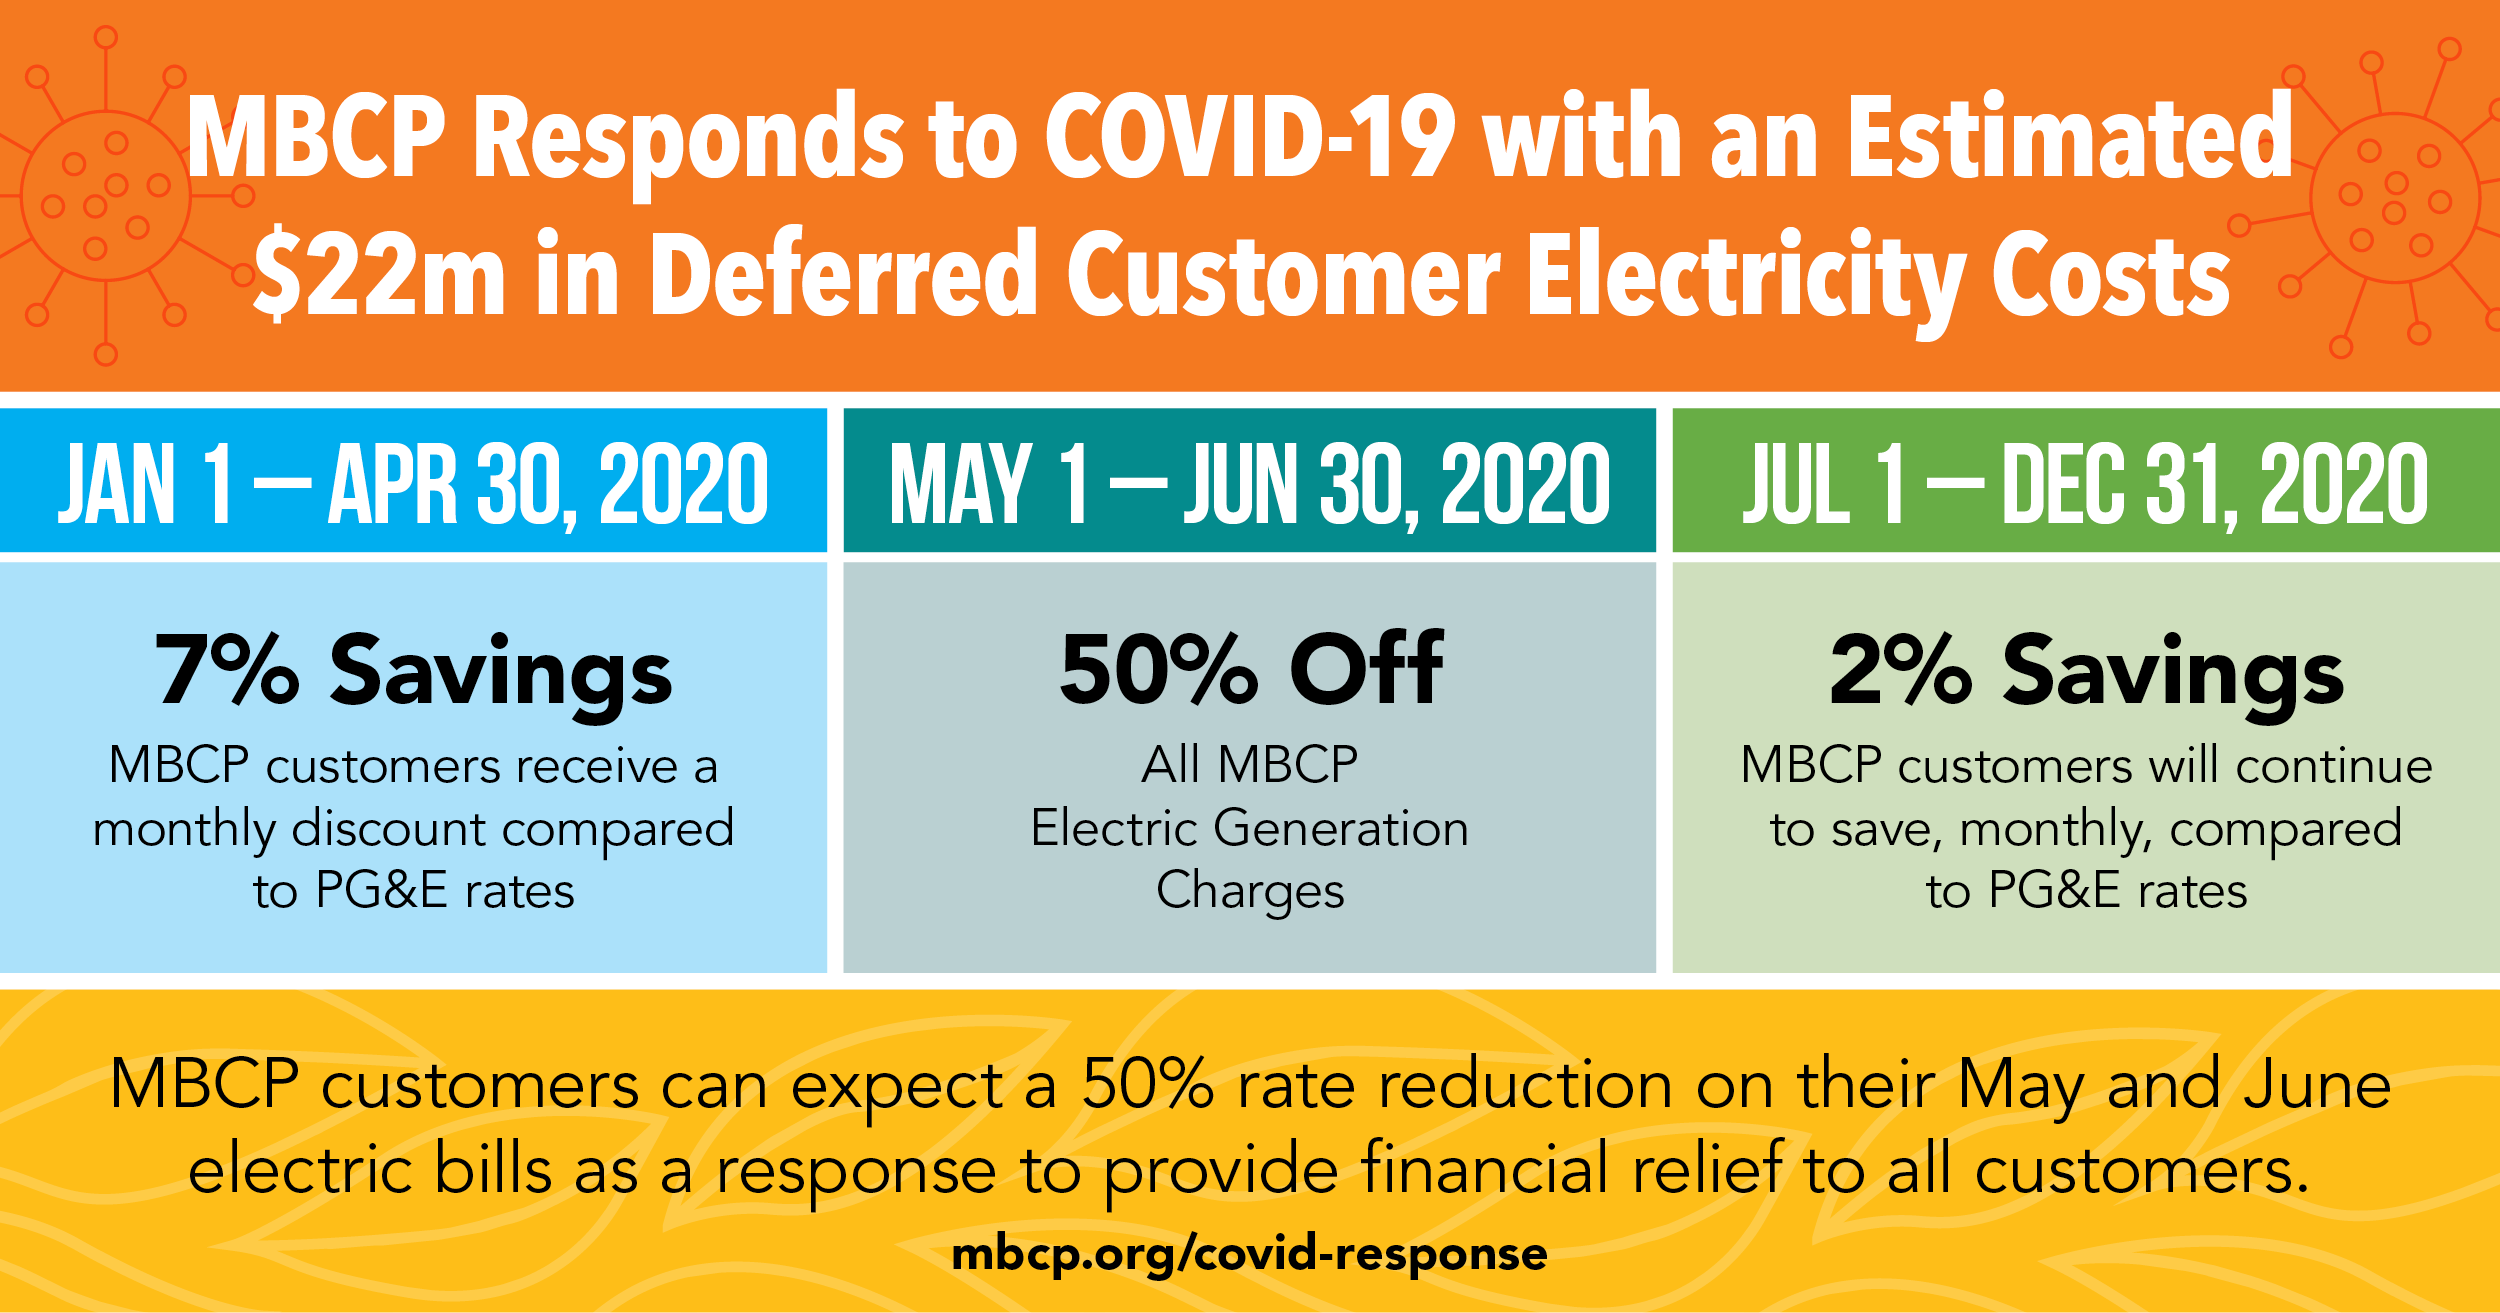 MBCP Responds to COVID-19 with 50% Cost Deferment for ALL Customers for Two Months